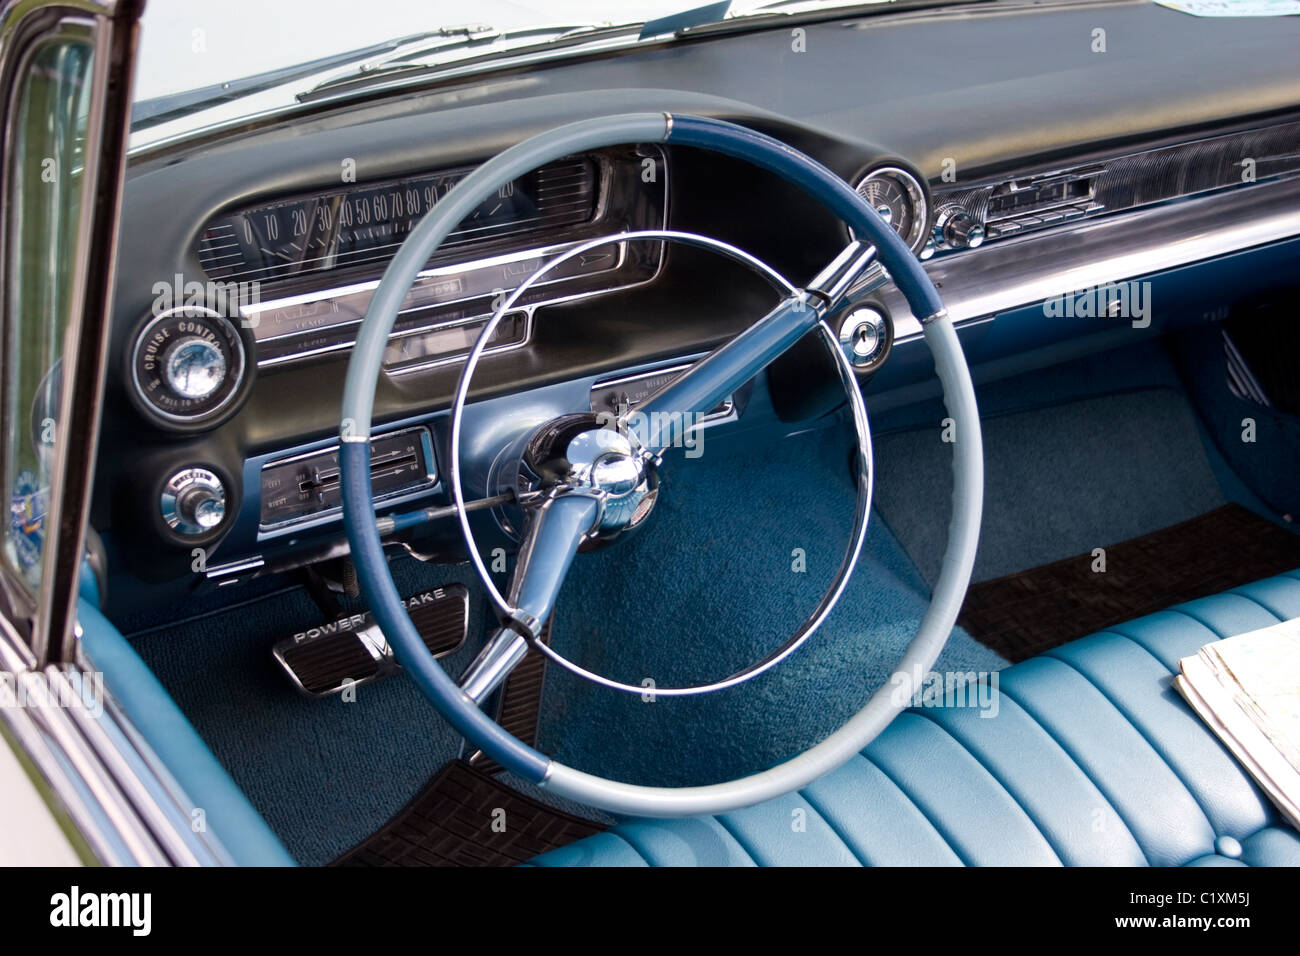 american car vehicle interior 50 39 s vintage blue wheel steering dash stock photo royalty free. Black Bedroom Furniture Sets. Home Design Ideas